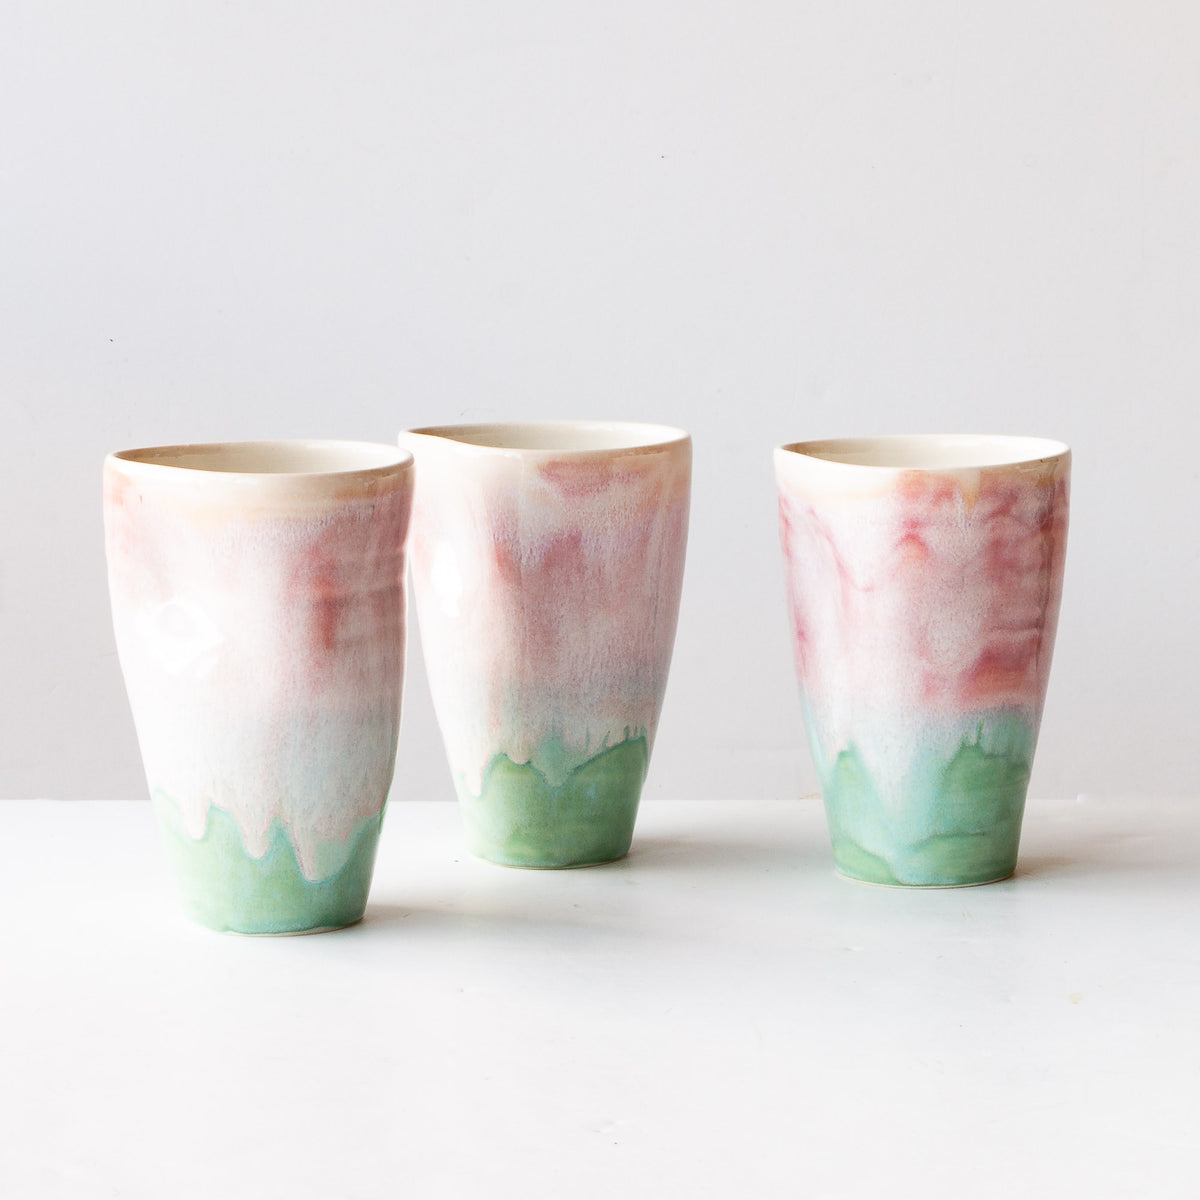 Three Handcrafted Large Ergonomic Tumblers - Watercolor - Sold by Chic & Basta